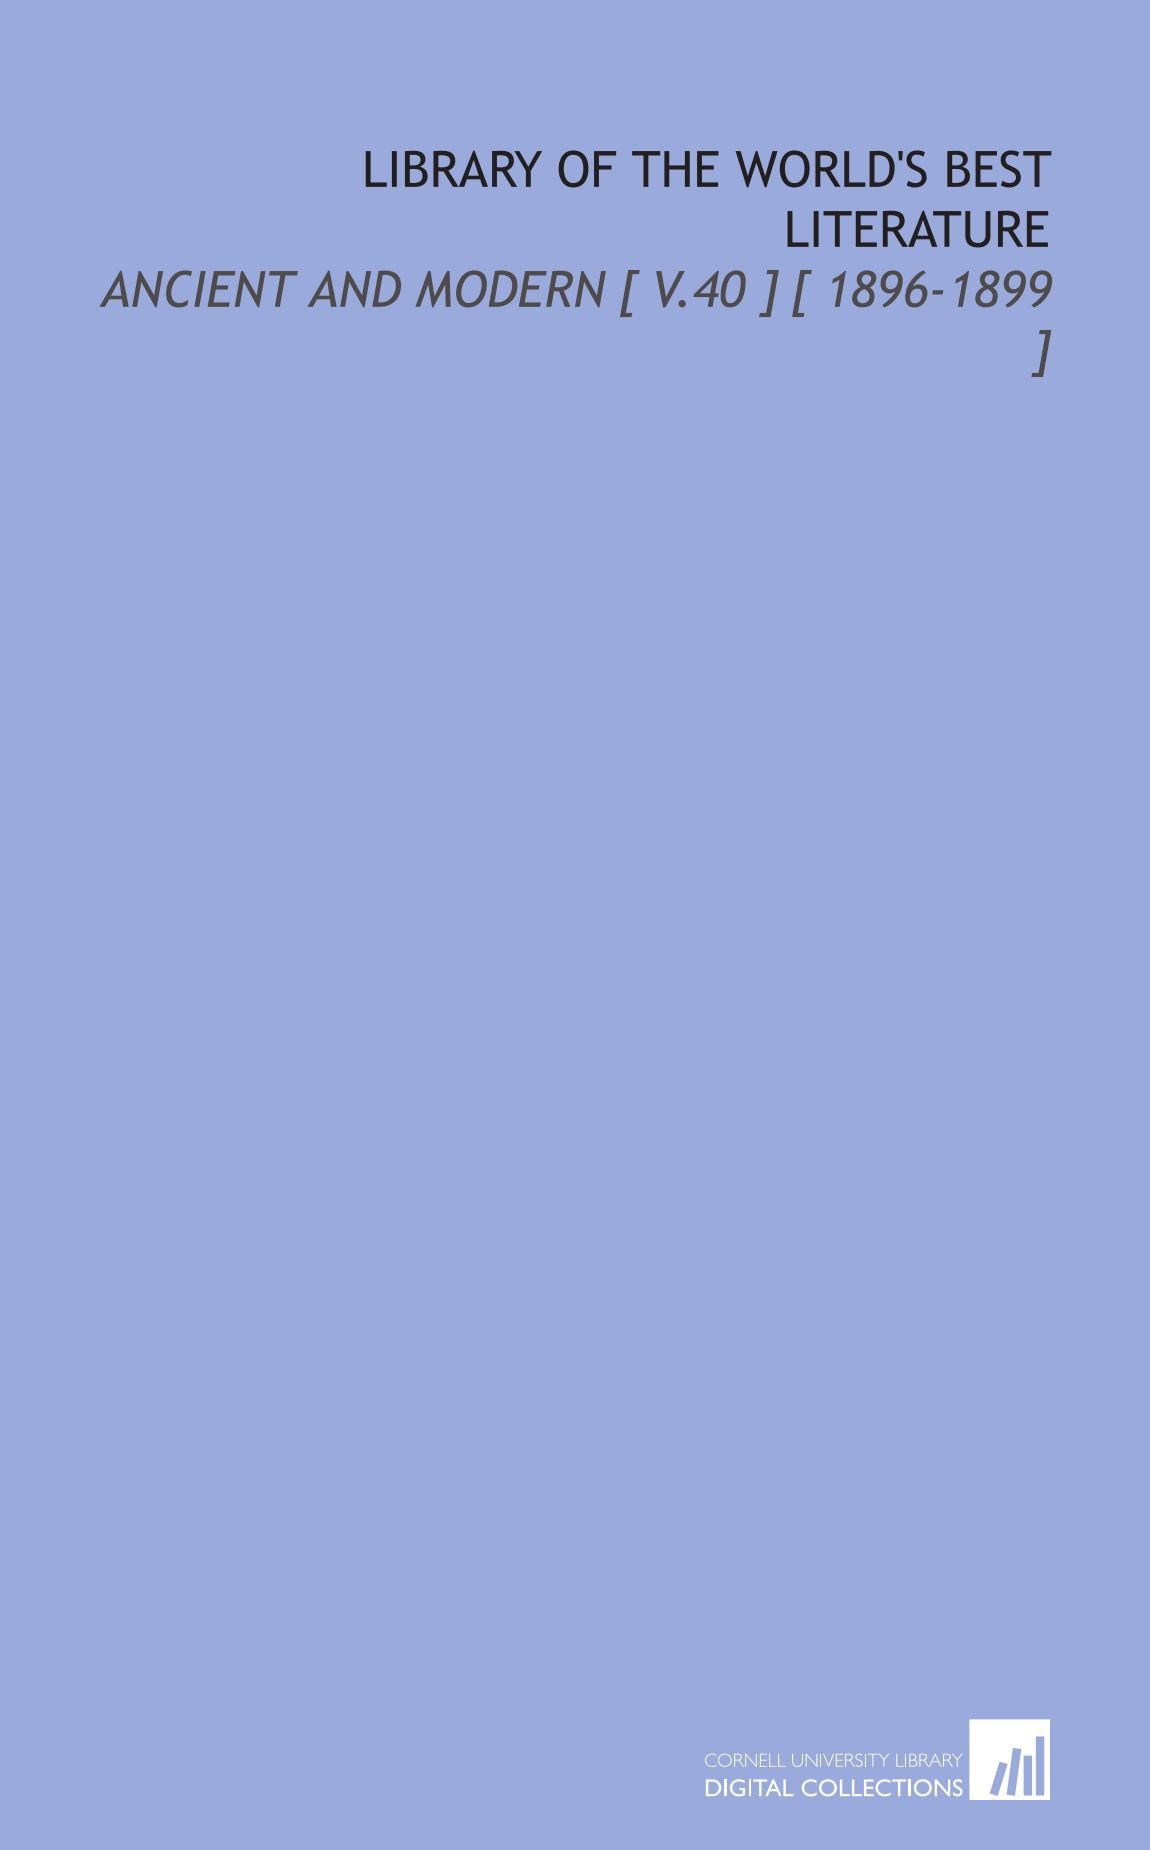 Library of the World's Best Literature: Ancient and Modern [ V.40 ] [ 1896-1899 ] PDF